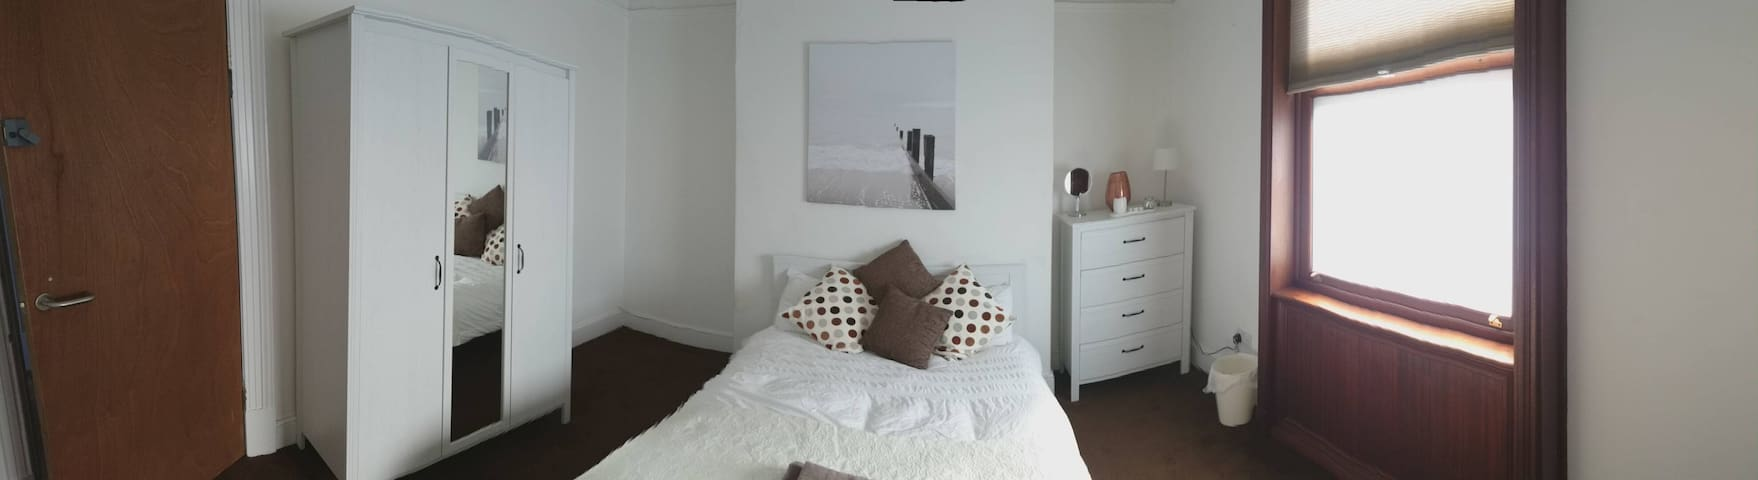 Double Bedroom GFR Det House with Secure Parking - Leicester - Huis